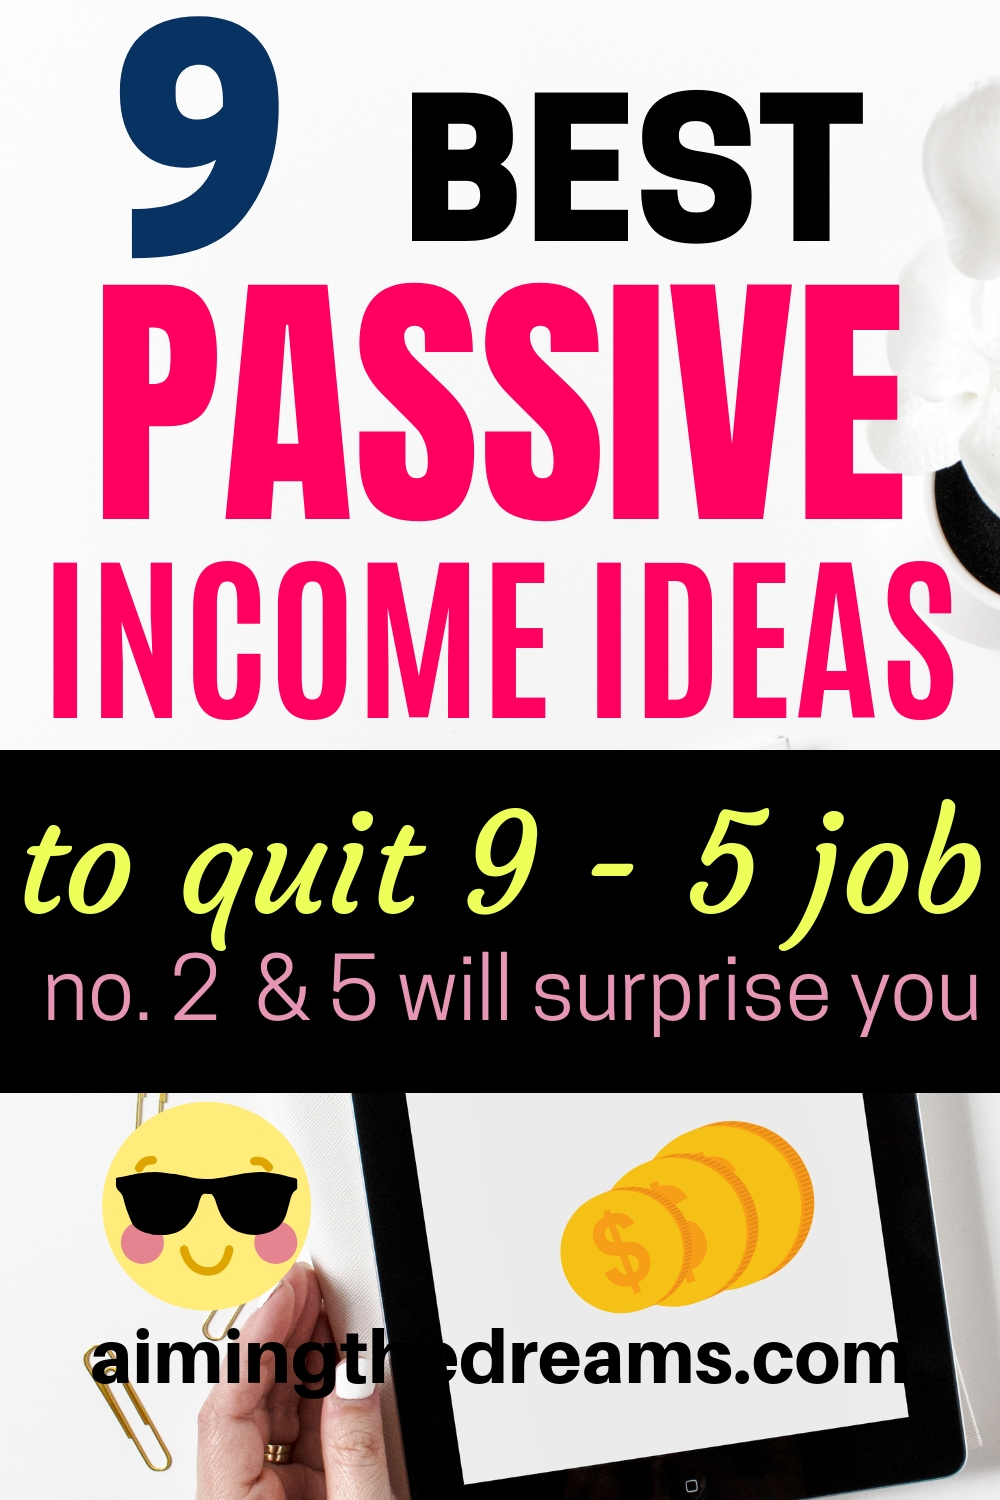 9 best passive income ideas to quit 9-5 job and make money. Side hustles and passive income ideas let you make money on top of your regular income